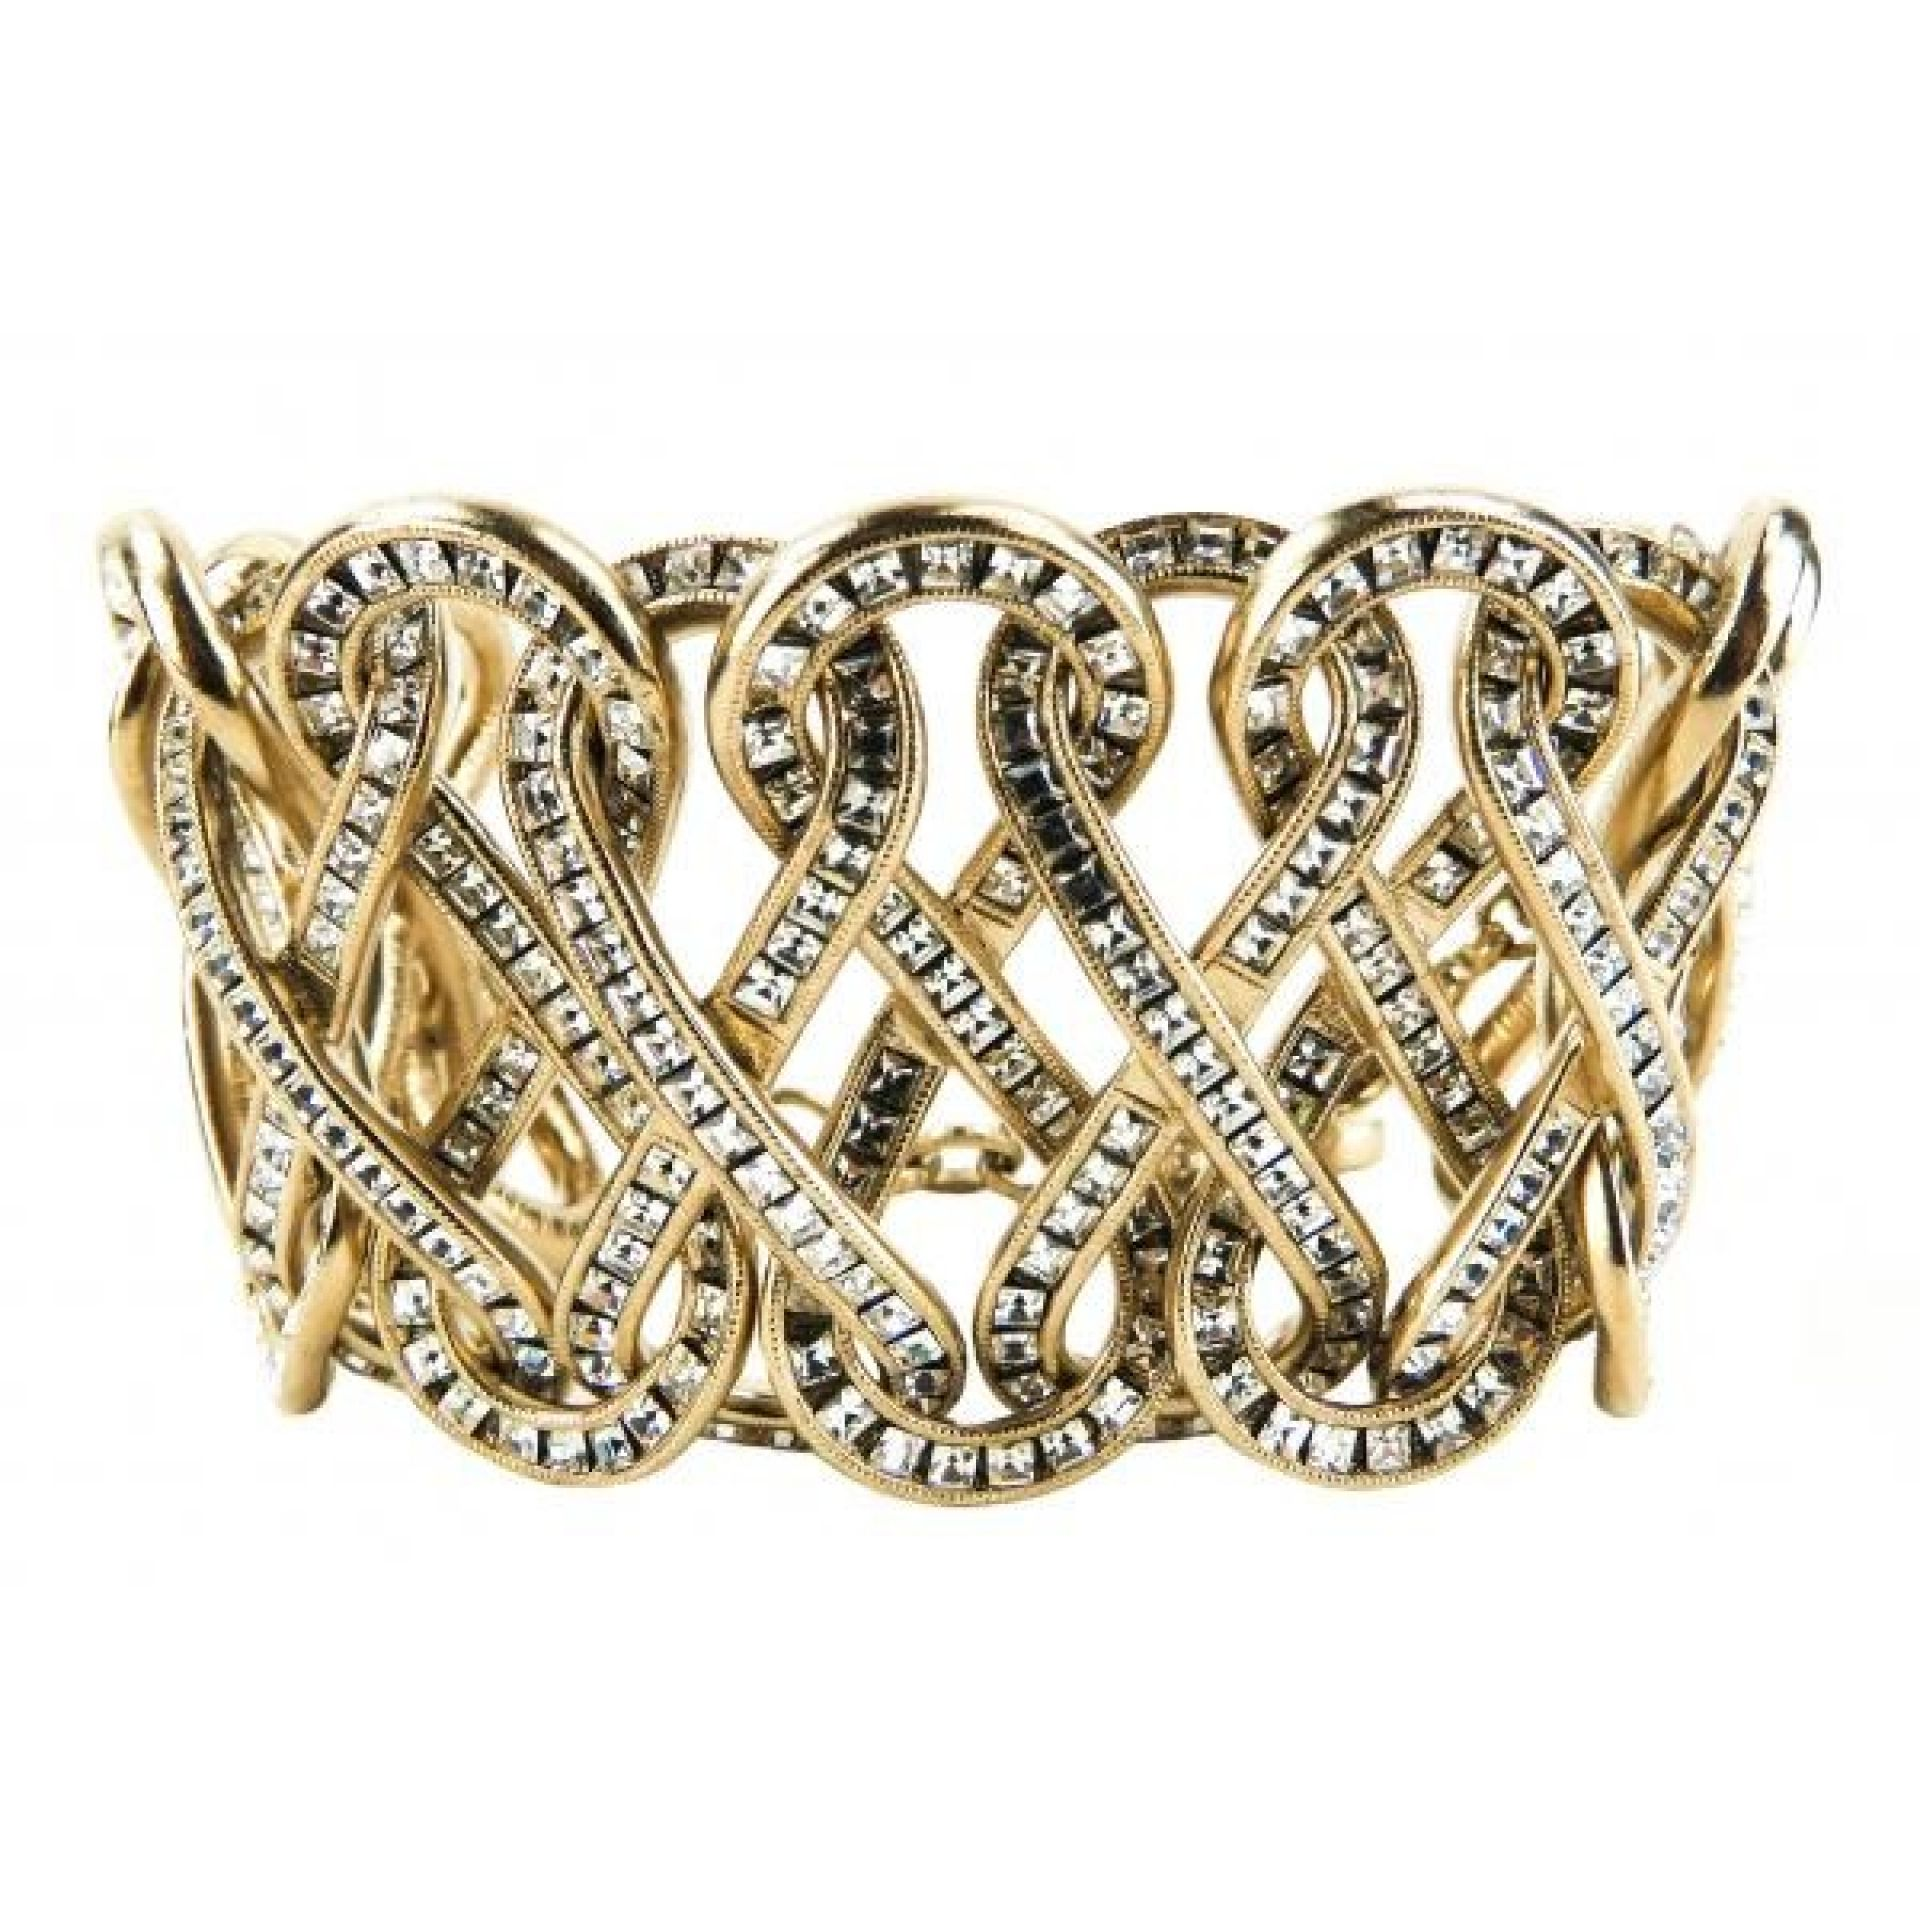 Chanel Gold-tone Crystal Braided Cuff Bracelet